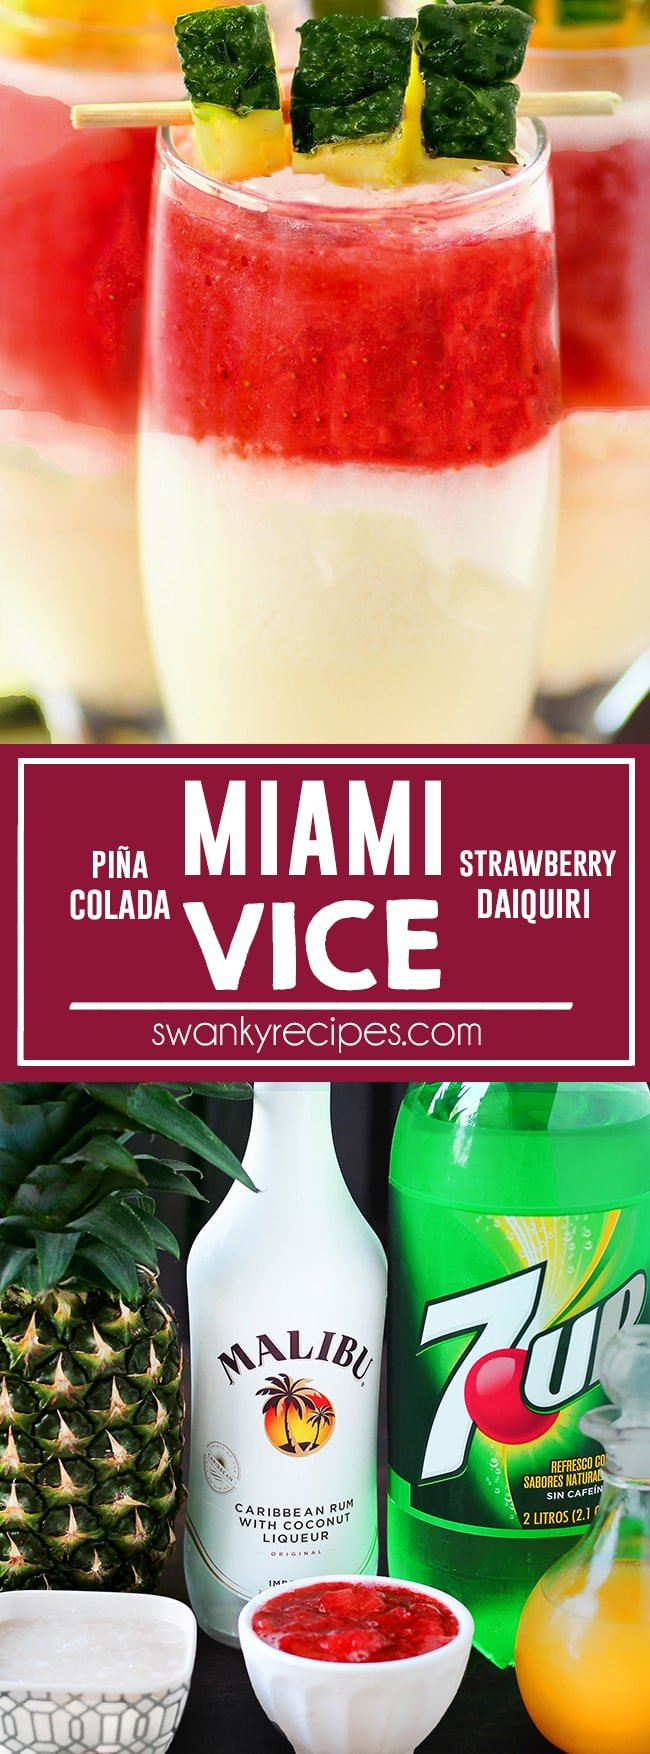 Miami Vice - BEST tropical rum drink! Miami Vice cocktail with strawberry daiquiri and pina colada served chill. A fruity summer adult beverage and a classic tropical resort drink.